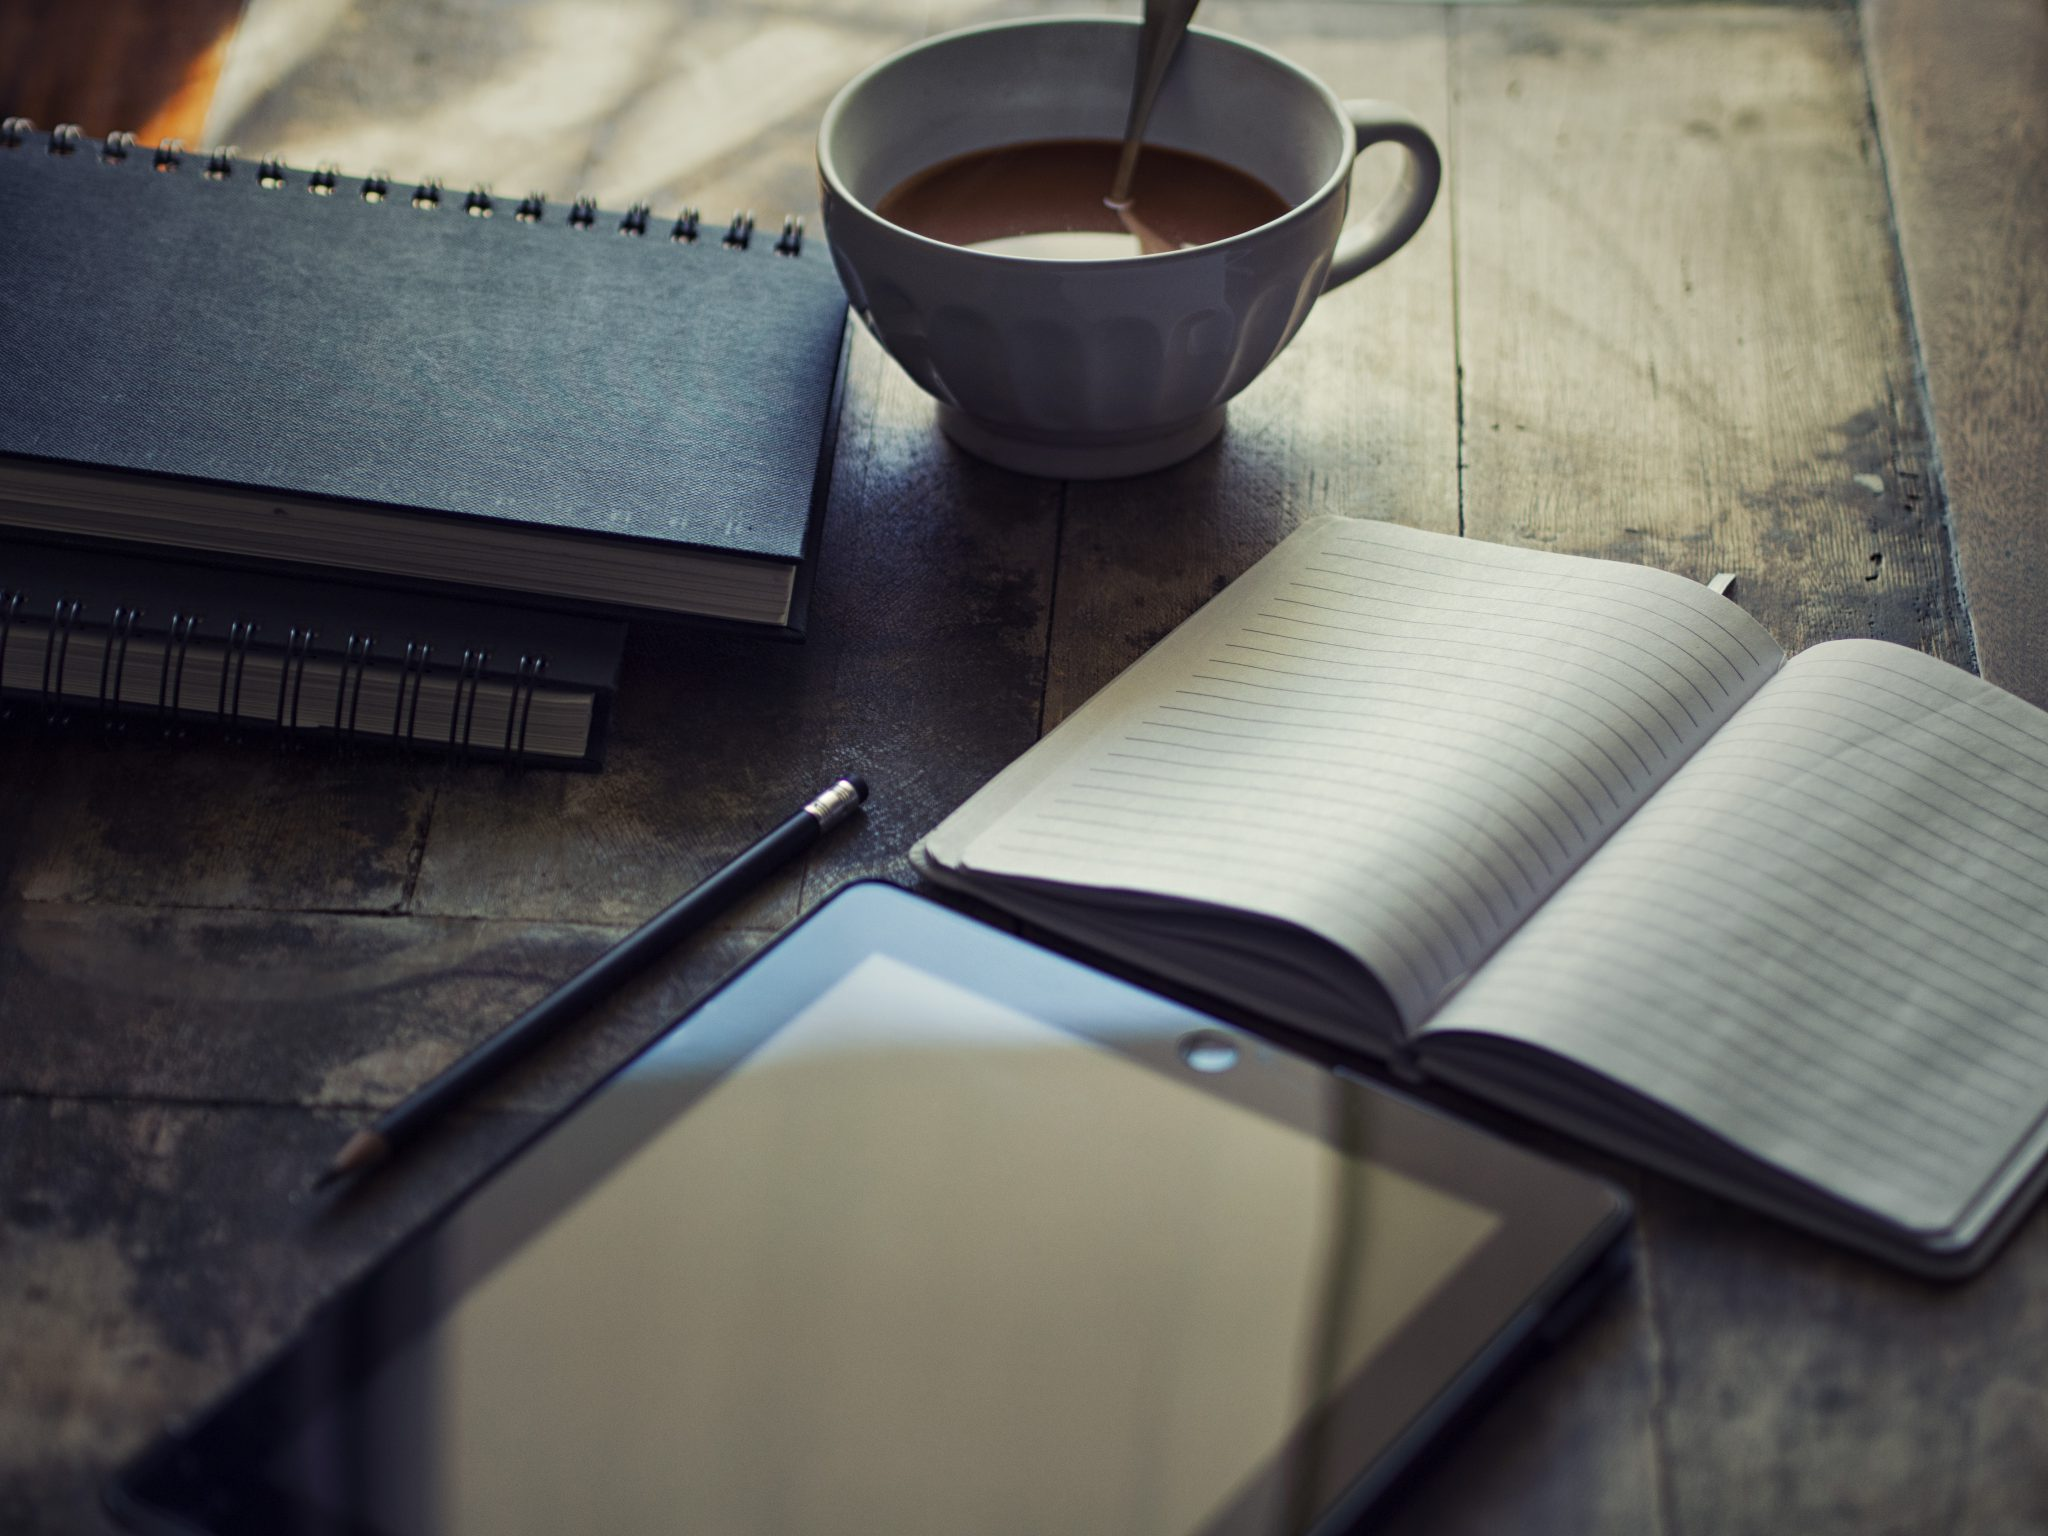 on a table: a tablet, a mug of coffee, and two journals